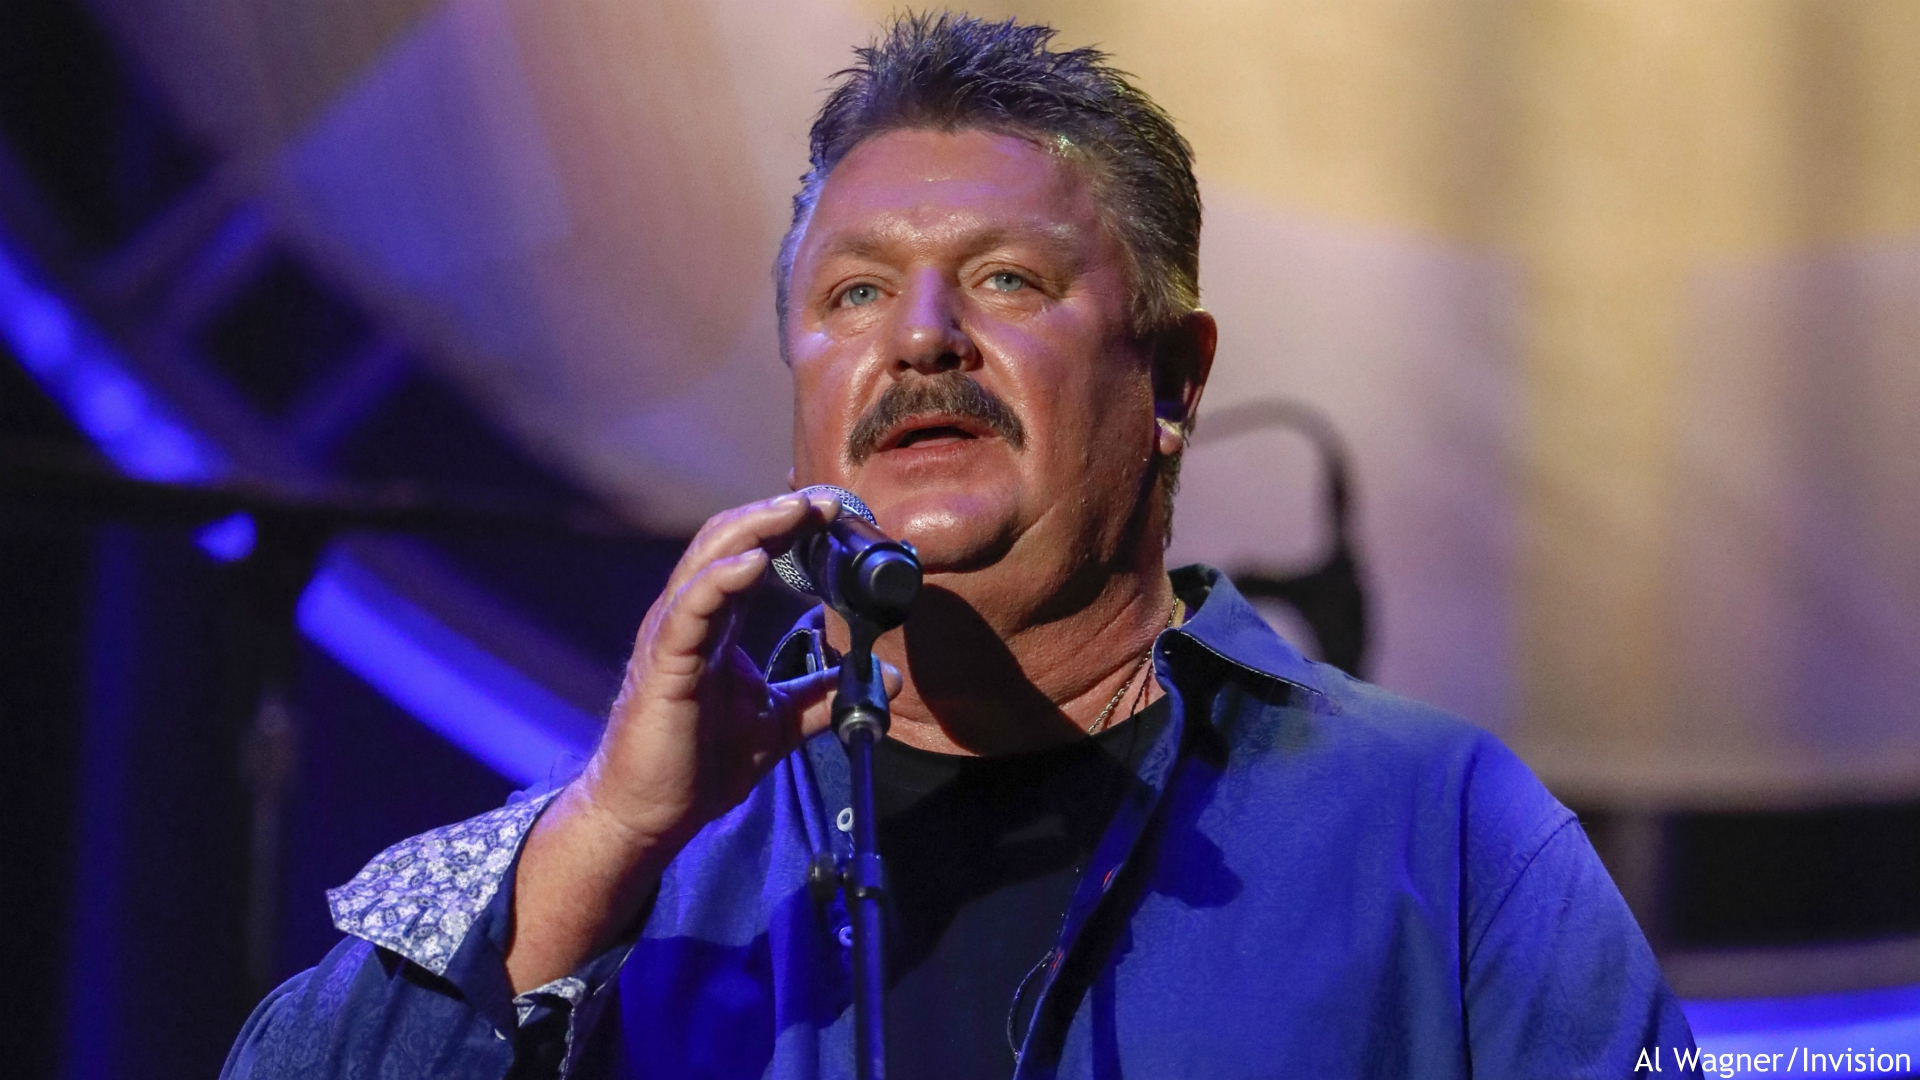 This Aug. 22, 2018 file photo shows Joe Diffie performing at the 12th annual ACM Honors in Nashville, Tenn. A publicist for Diffie says the country singer has tested positive for COVID-19. Diffie is under the care of medical professionals and is receiving treatment. (Photo by Al Wagner/Invision/AP, File)